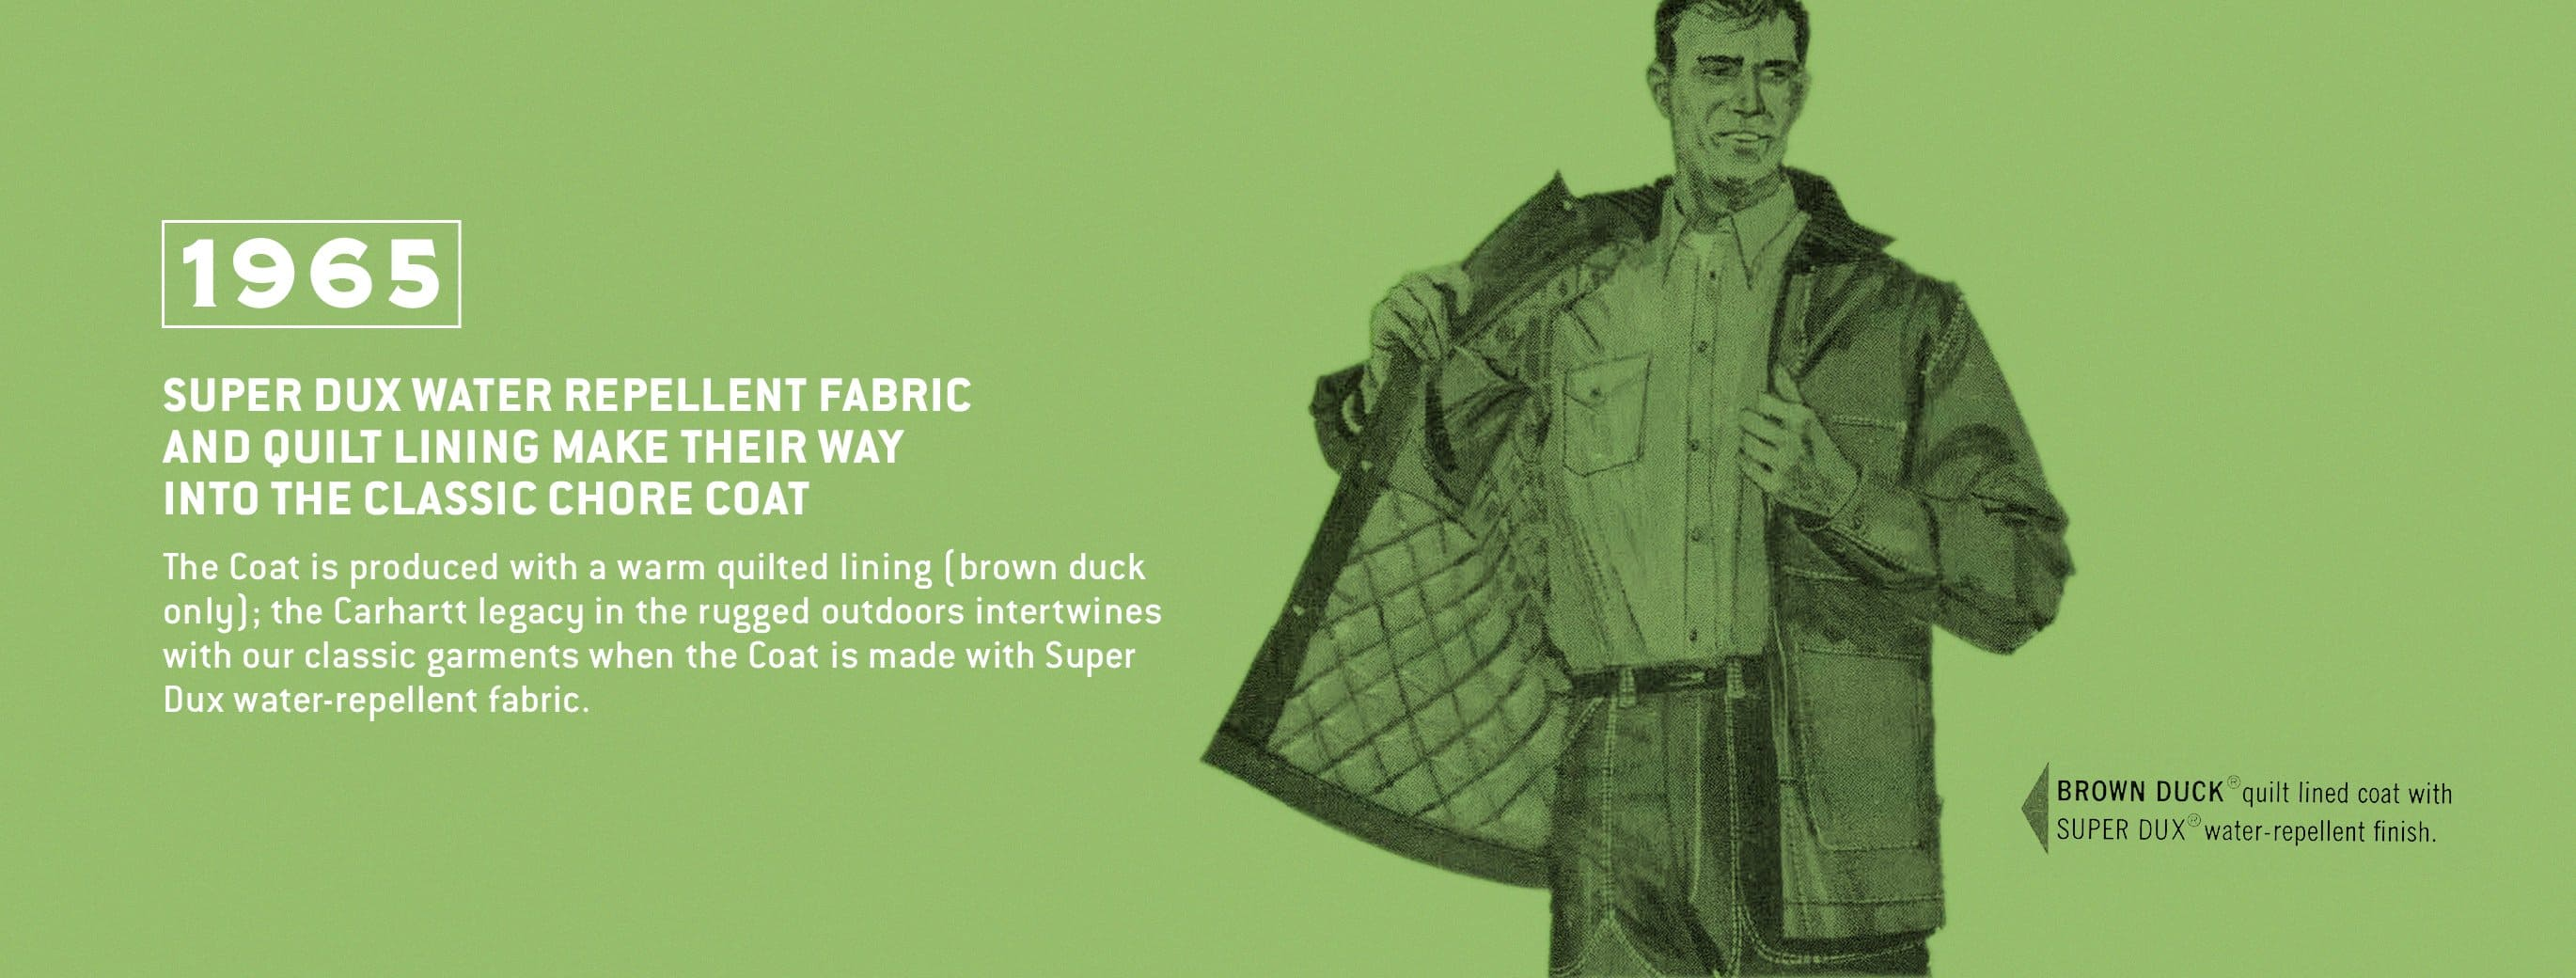 Super dux water repellent fabric and quilt lining make their way into the classic chore coat